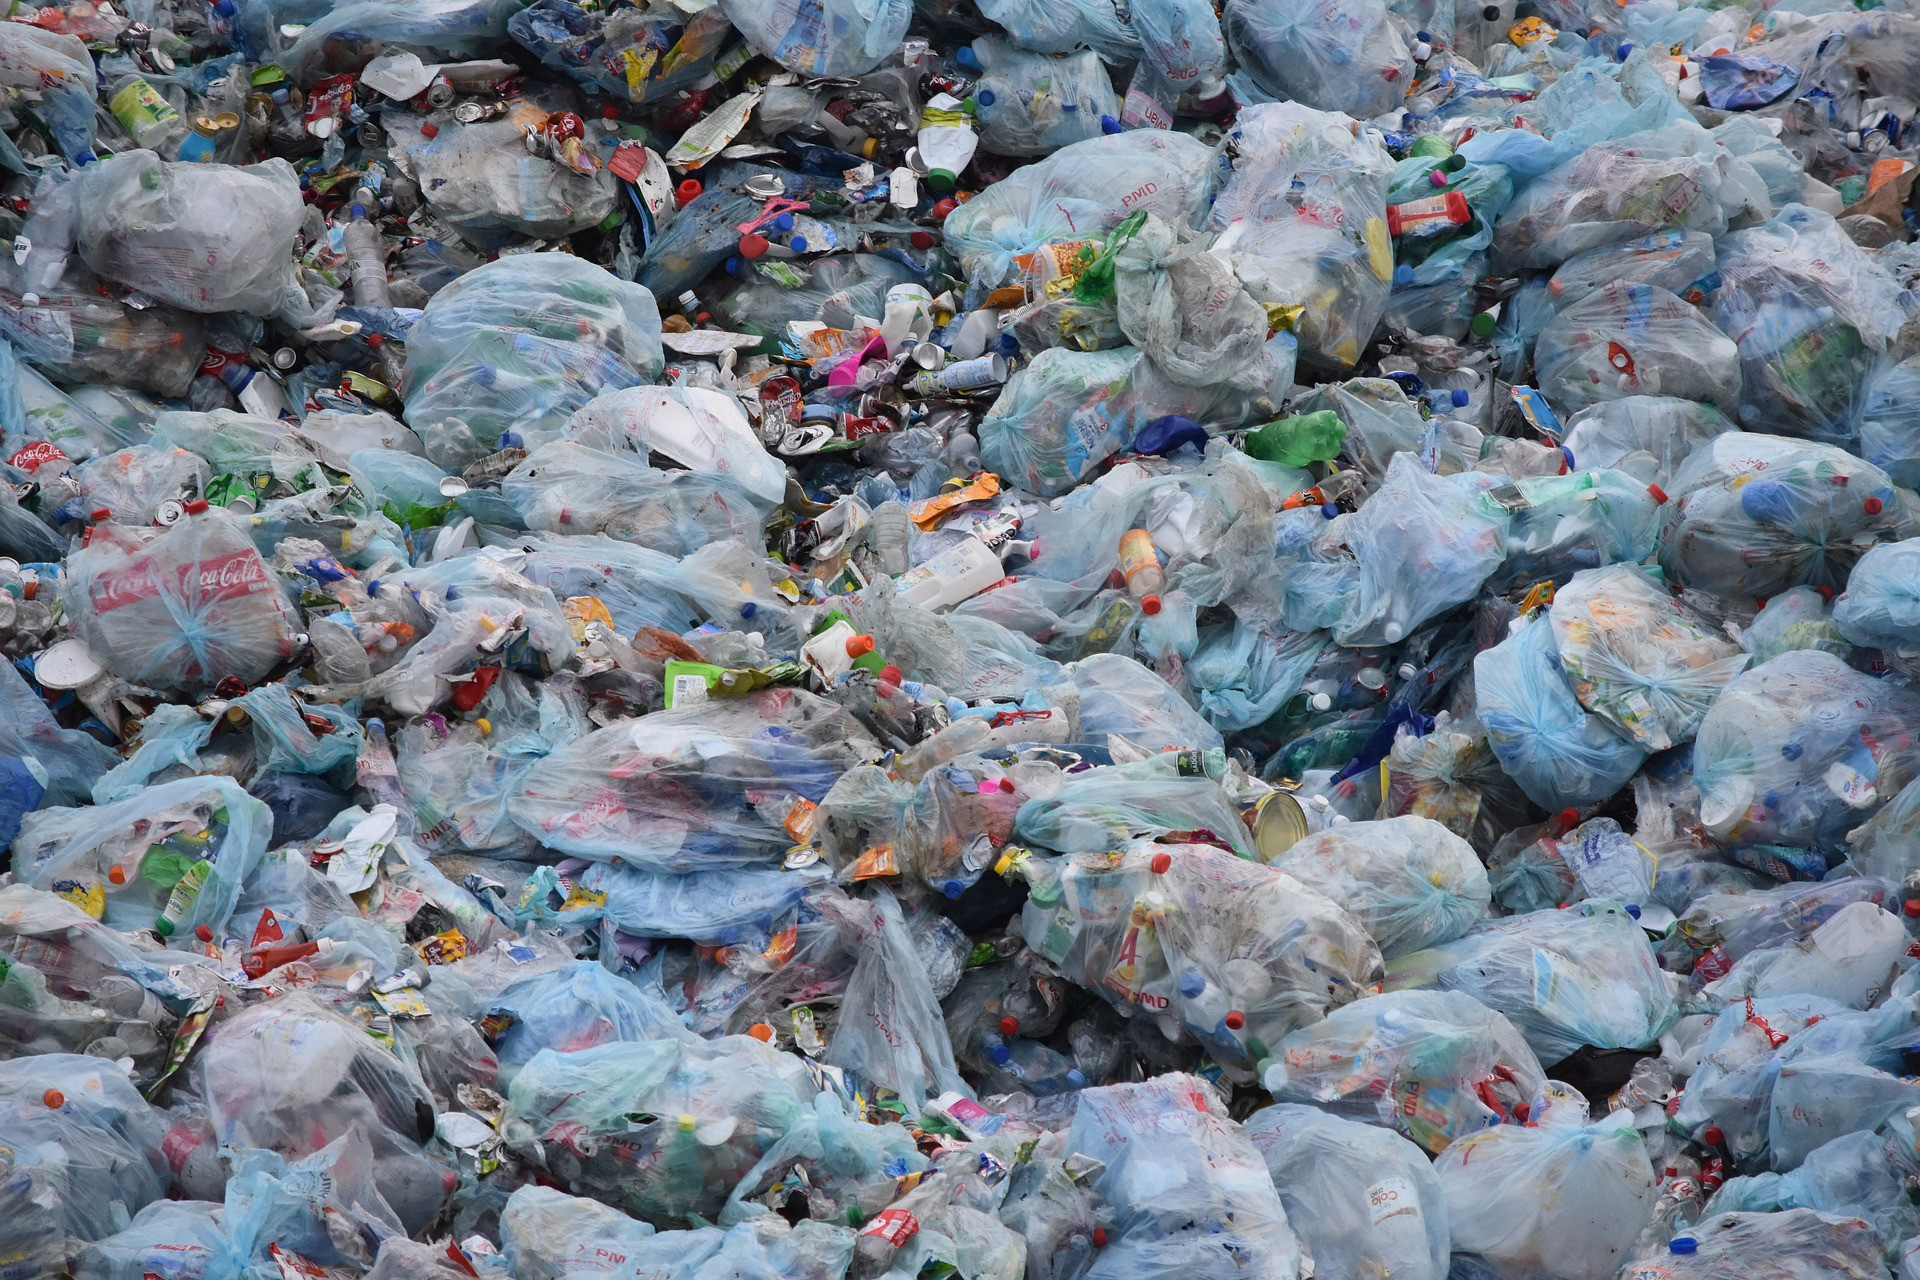 essay on plastic bags are convenient and should not be banned